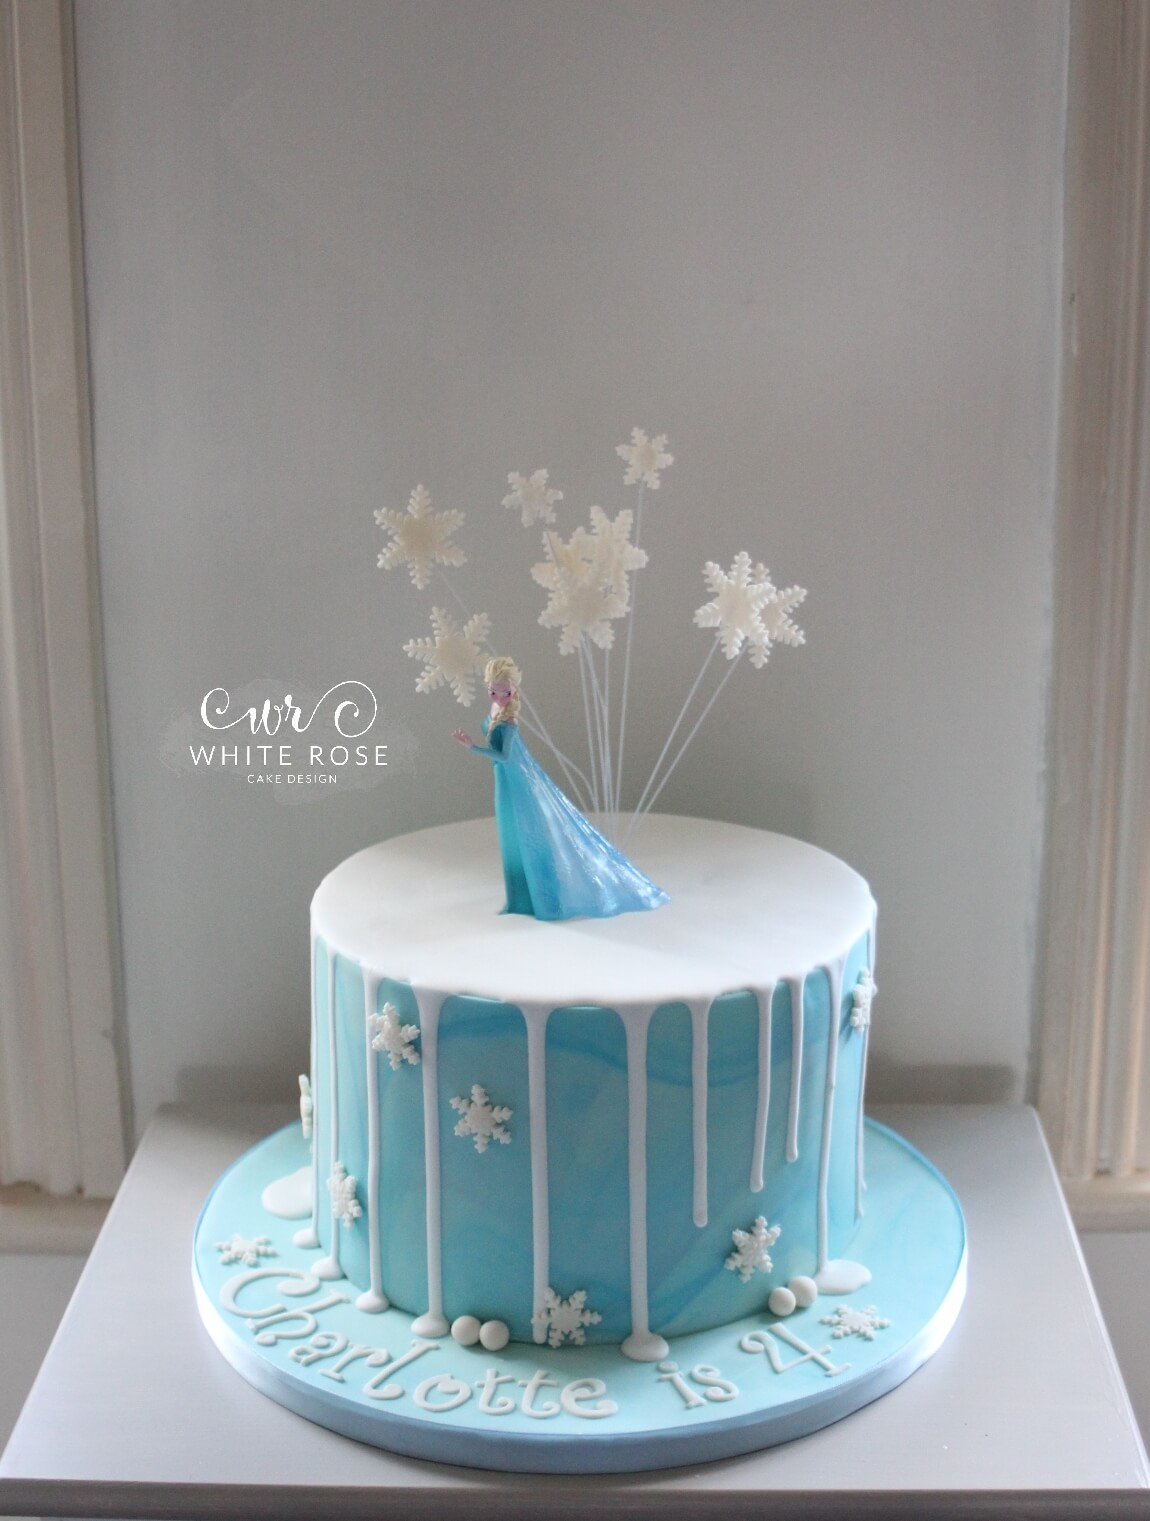 Marvelous Elsa From Frozen Themed 4Th Birthday Cake By White Rose Cake Birthday Cards Printable Trancafe Filternl